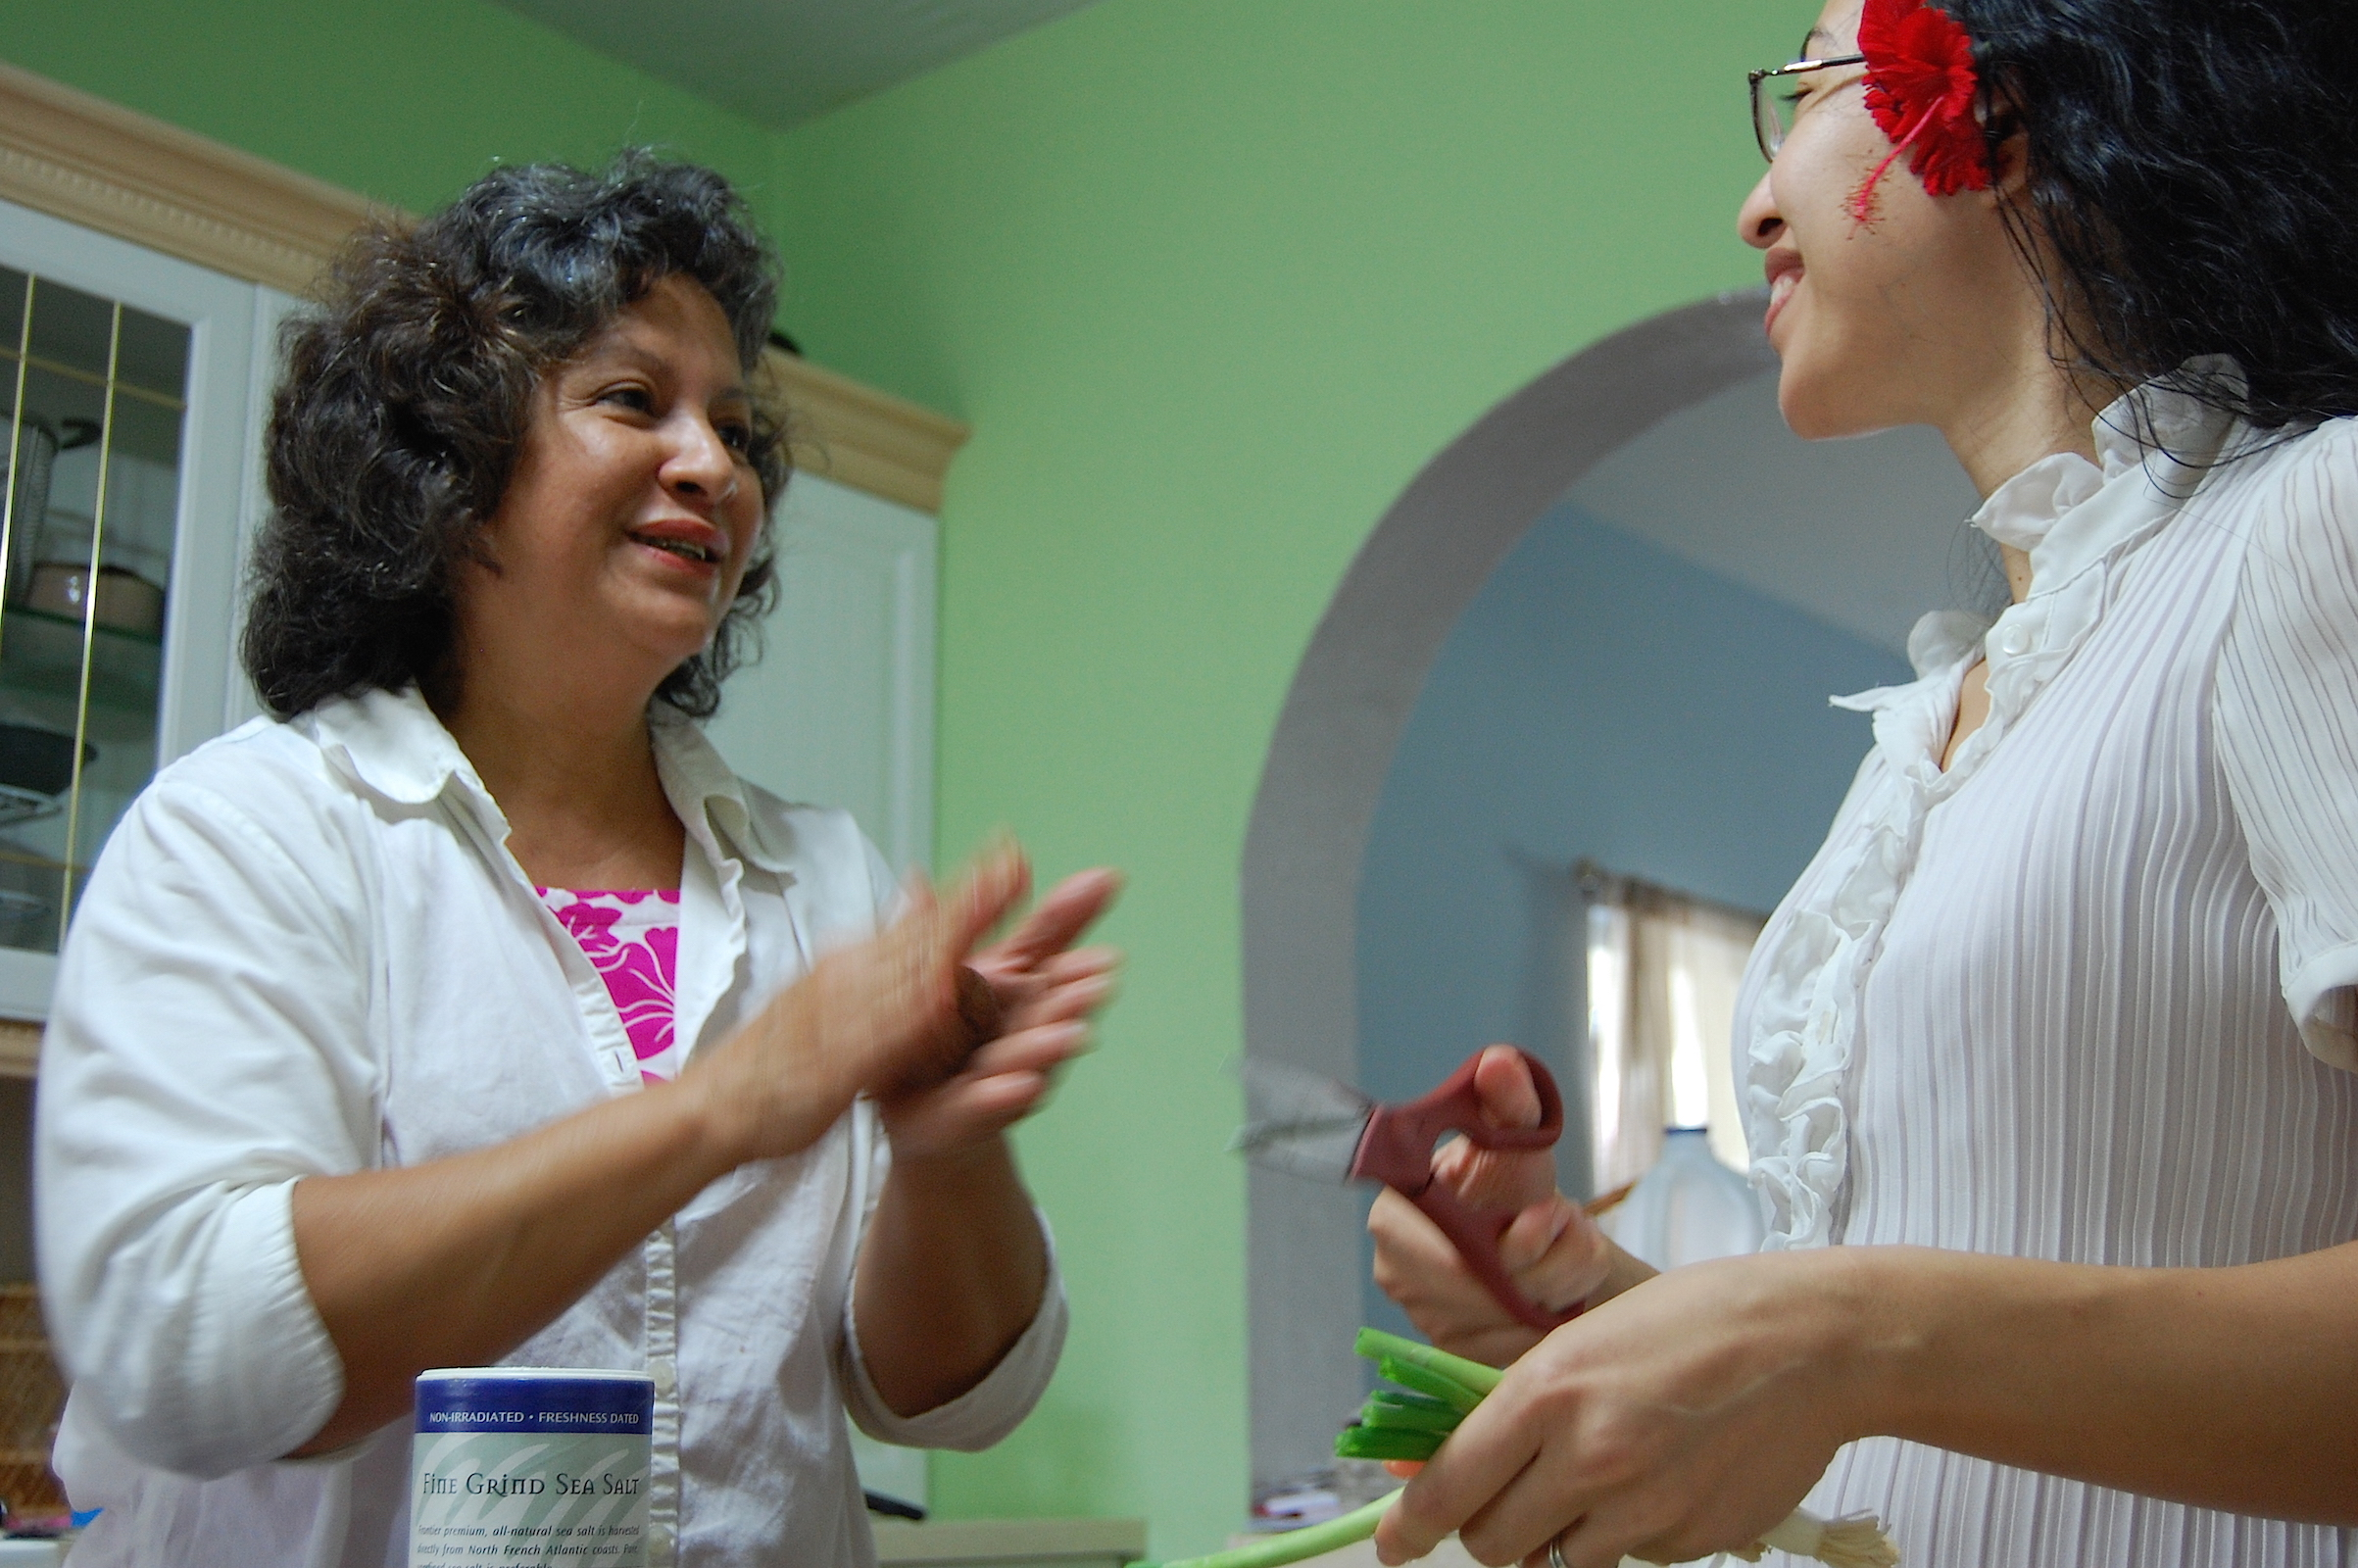 2010 in Guam. Young Heistheway captures a special moment of Mom and I talking and cooking for a random special meal she wanted to have during her visit to see us.